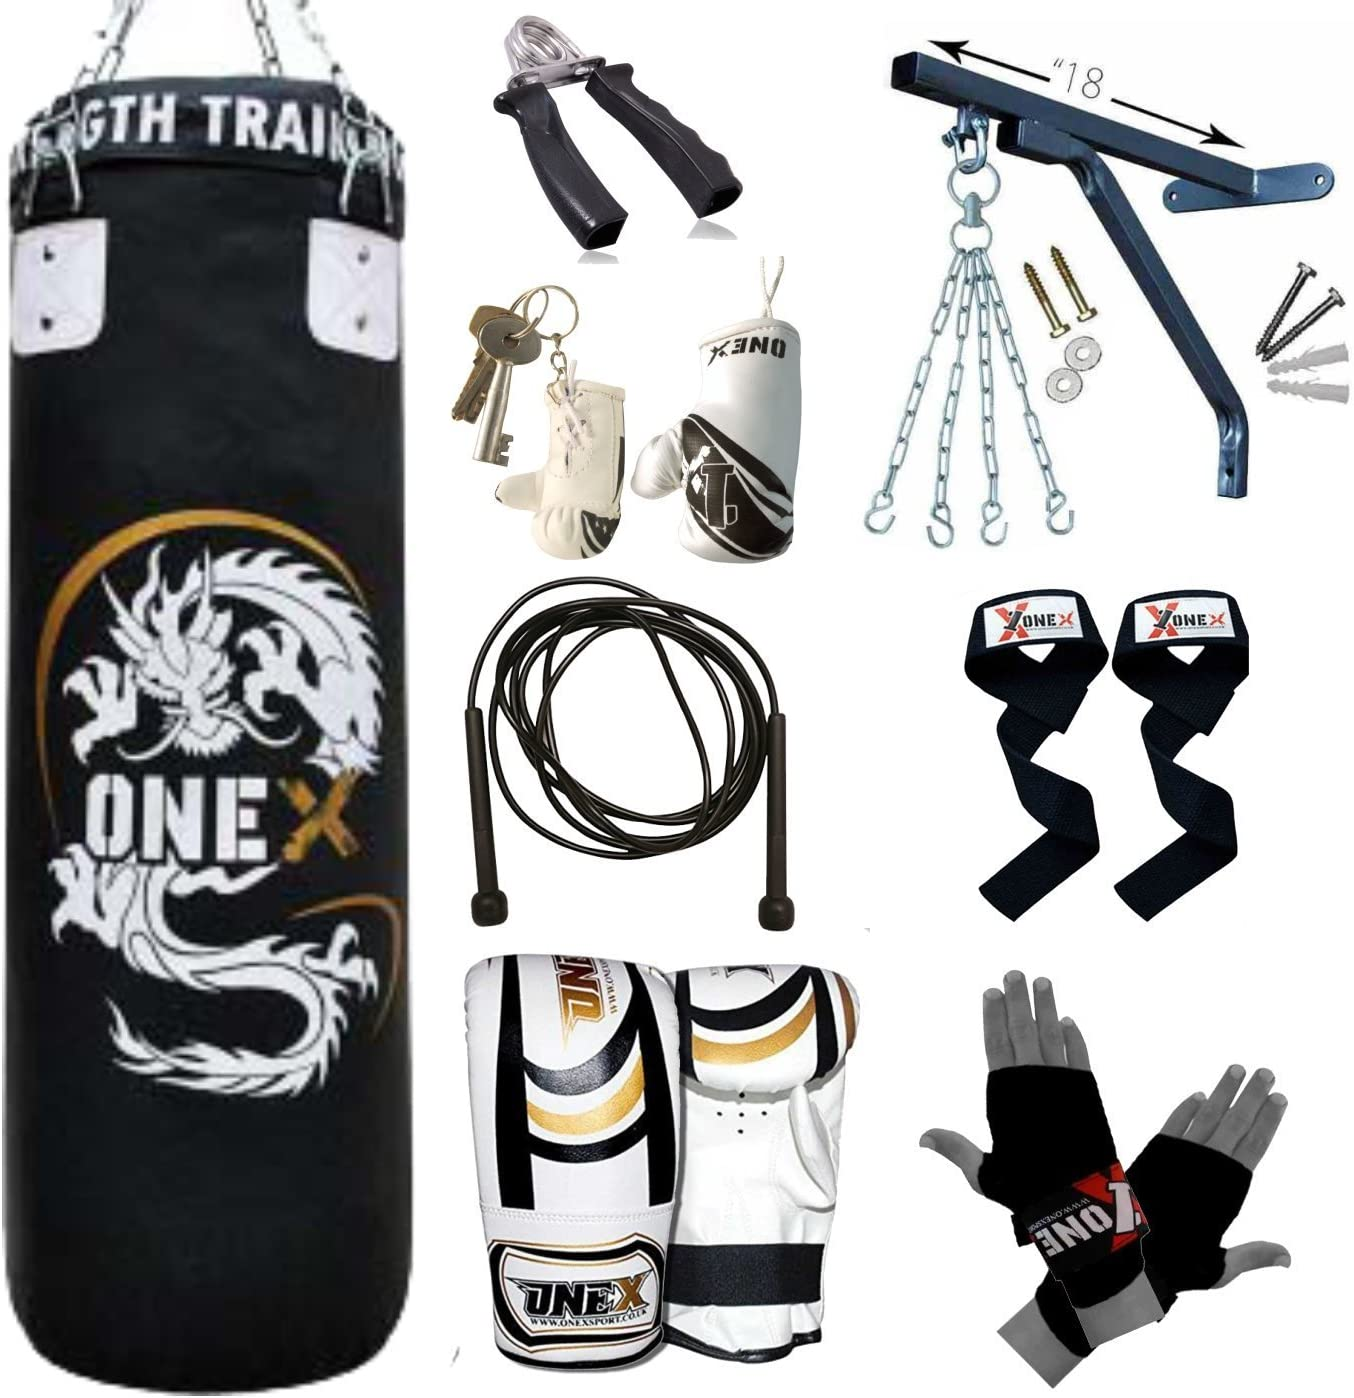 ONEX 3ft Filled Heavy Boxing Punch Bag Kit Gym MMA Set Boxed Pack Kids Xmas Gift